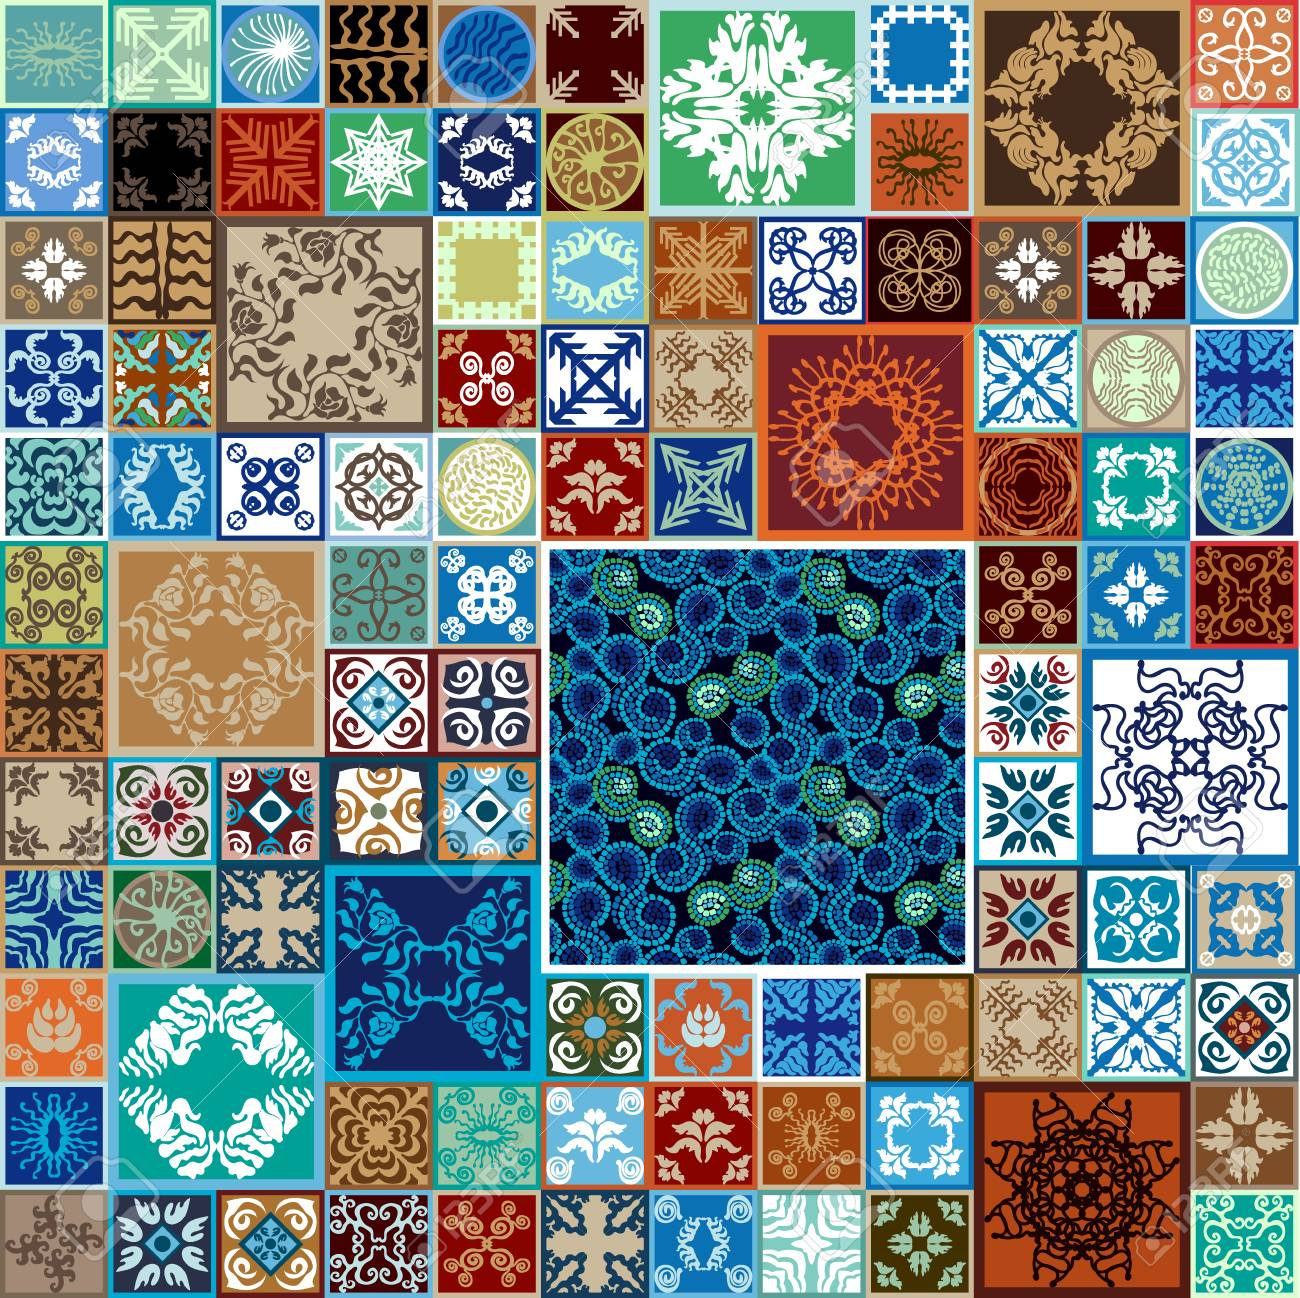 Colorful Vintage Tiles With Moroccan Floral And Geometrical Patterns ...